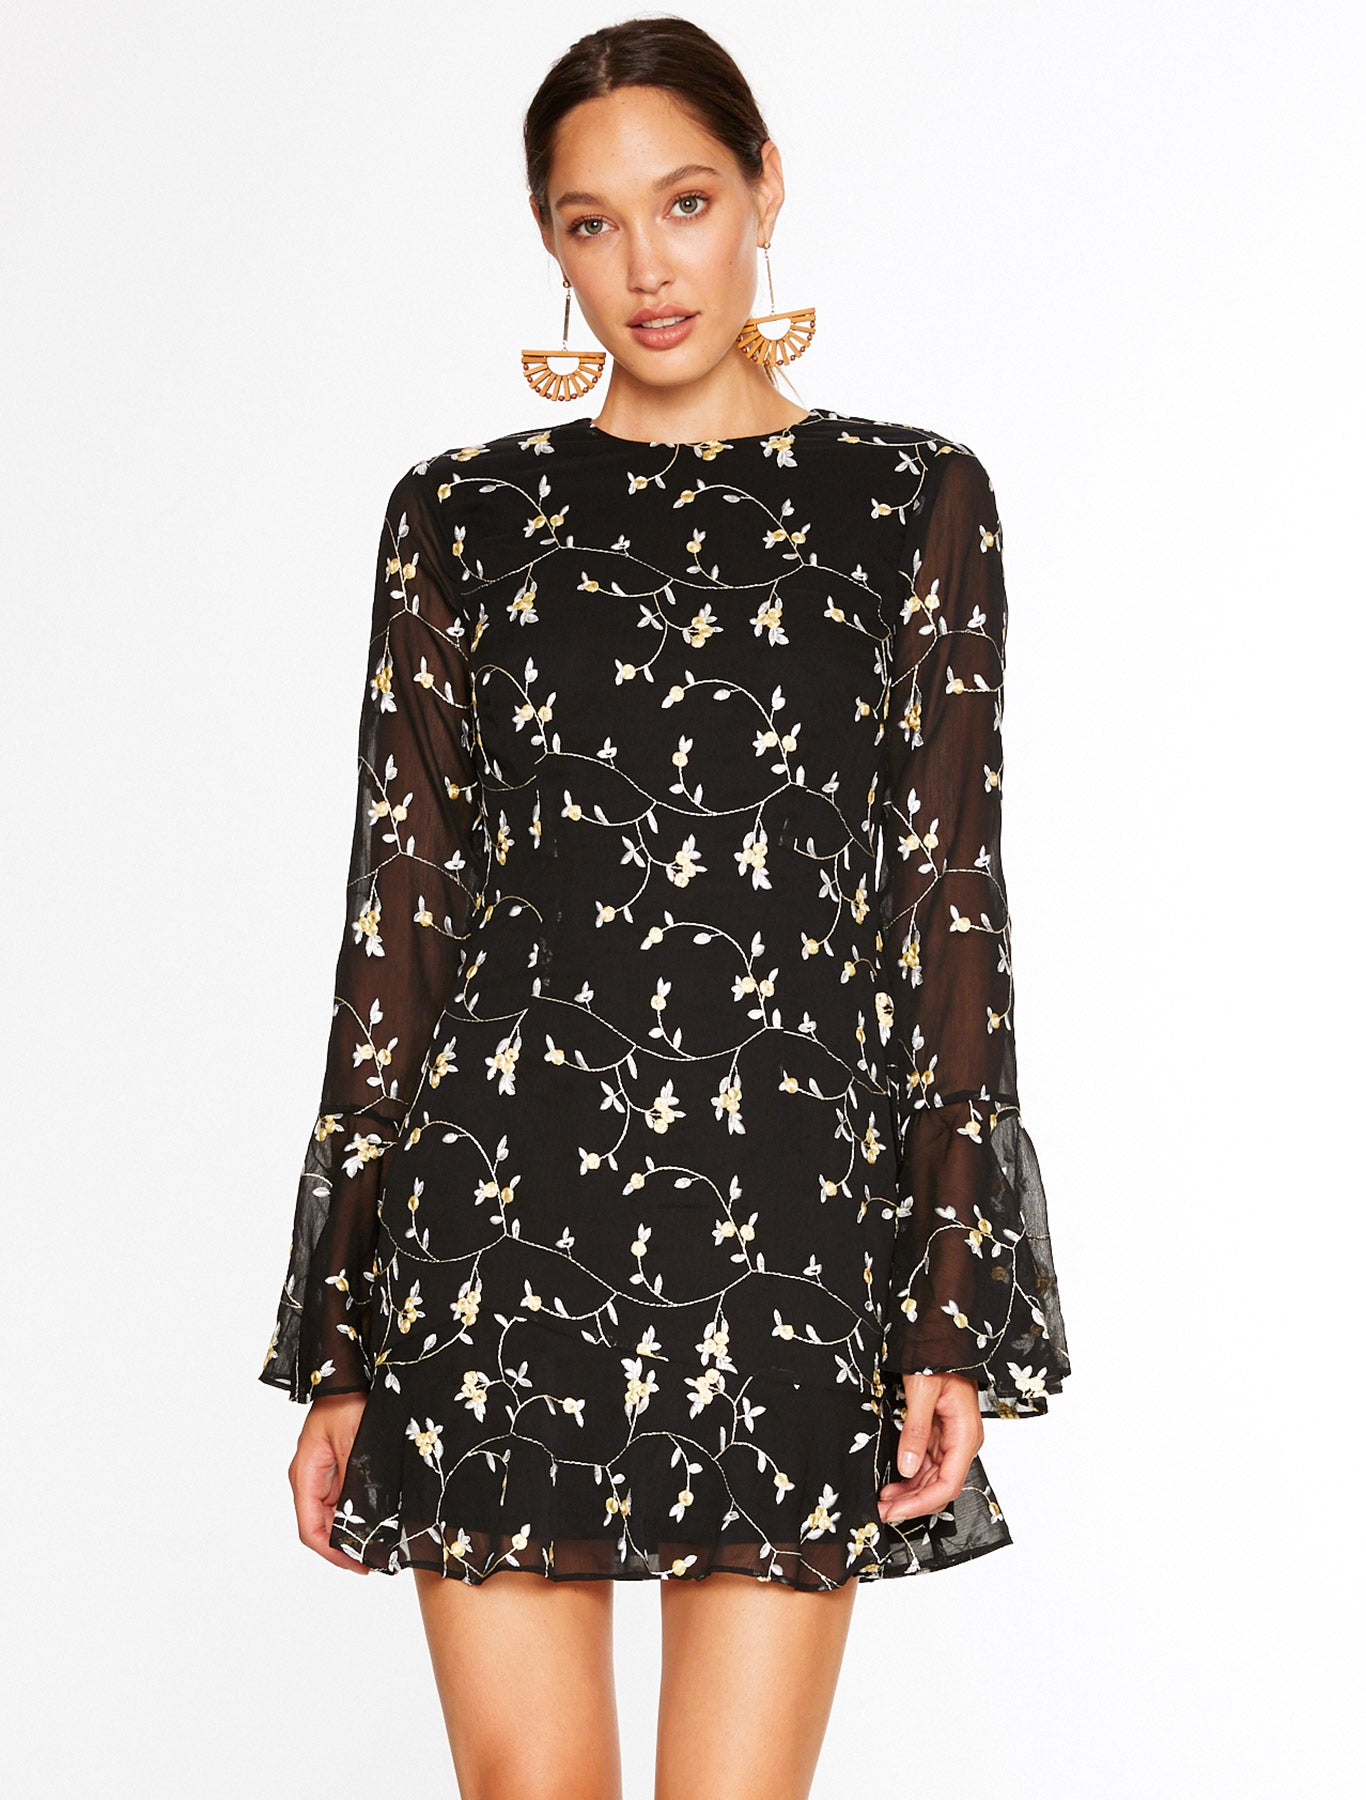 NIGHT SPARK MINI DRESS